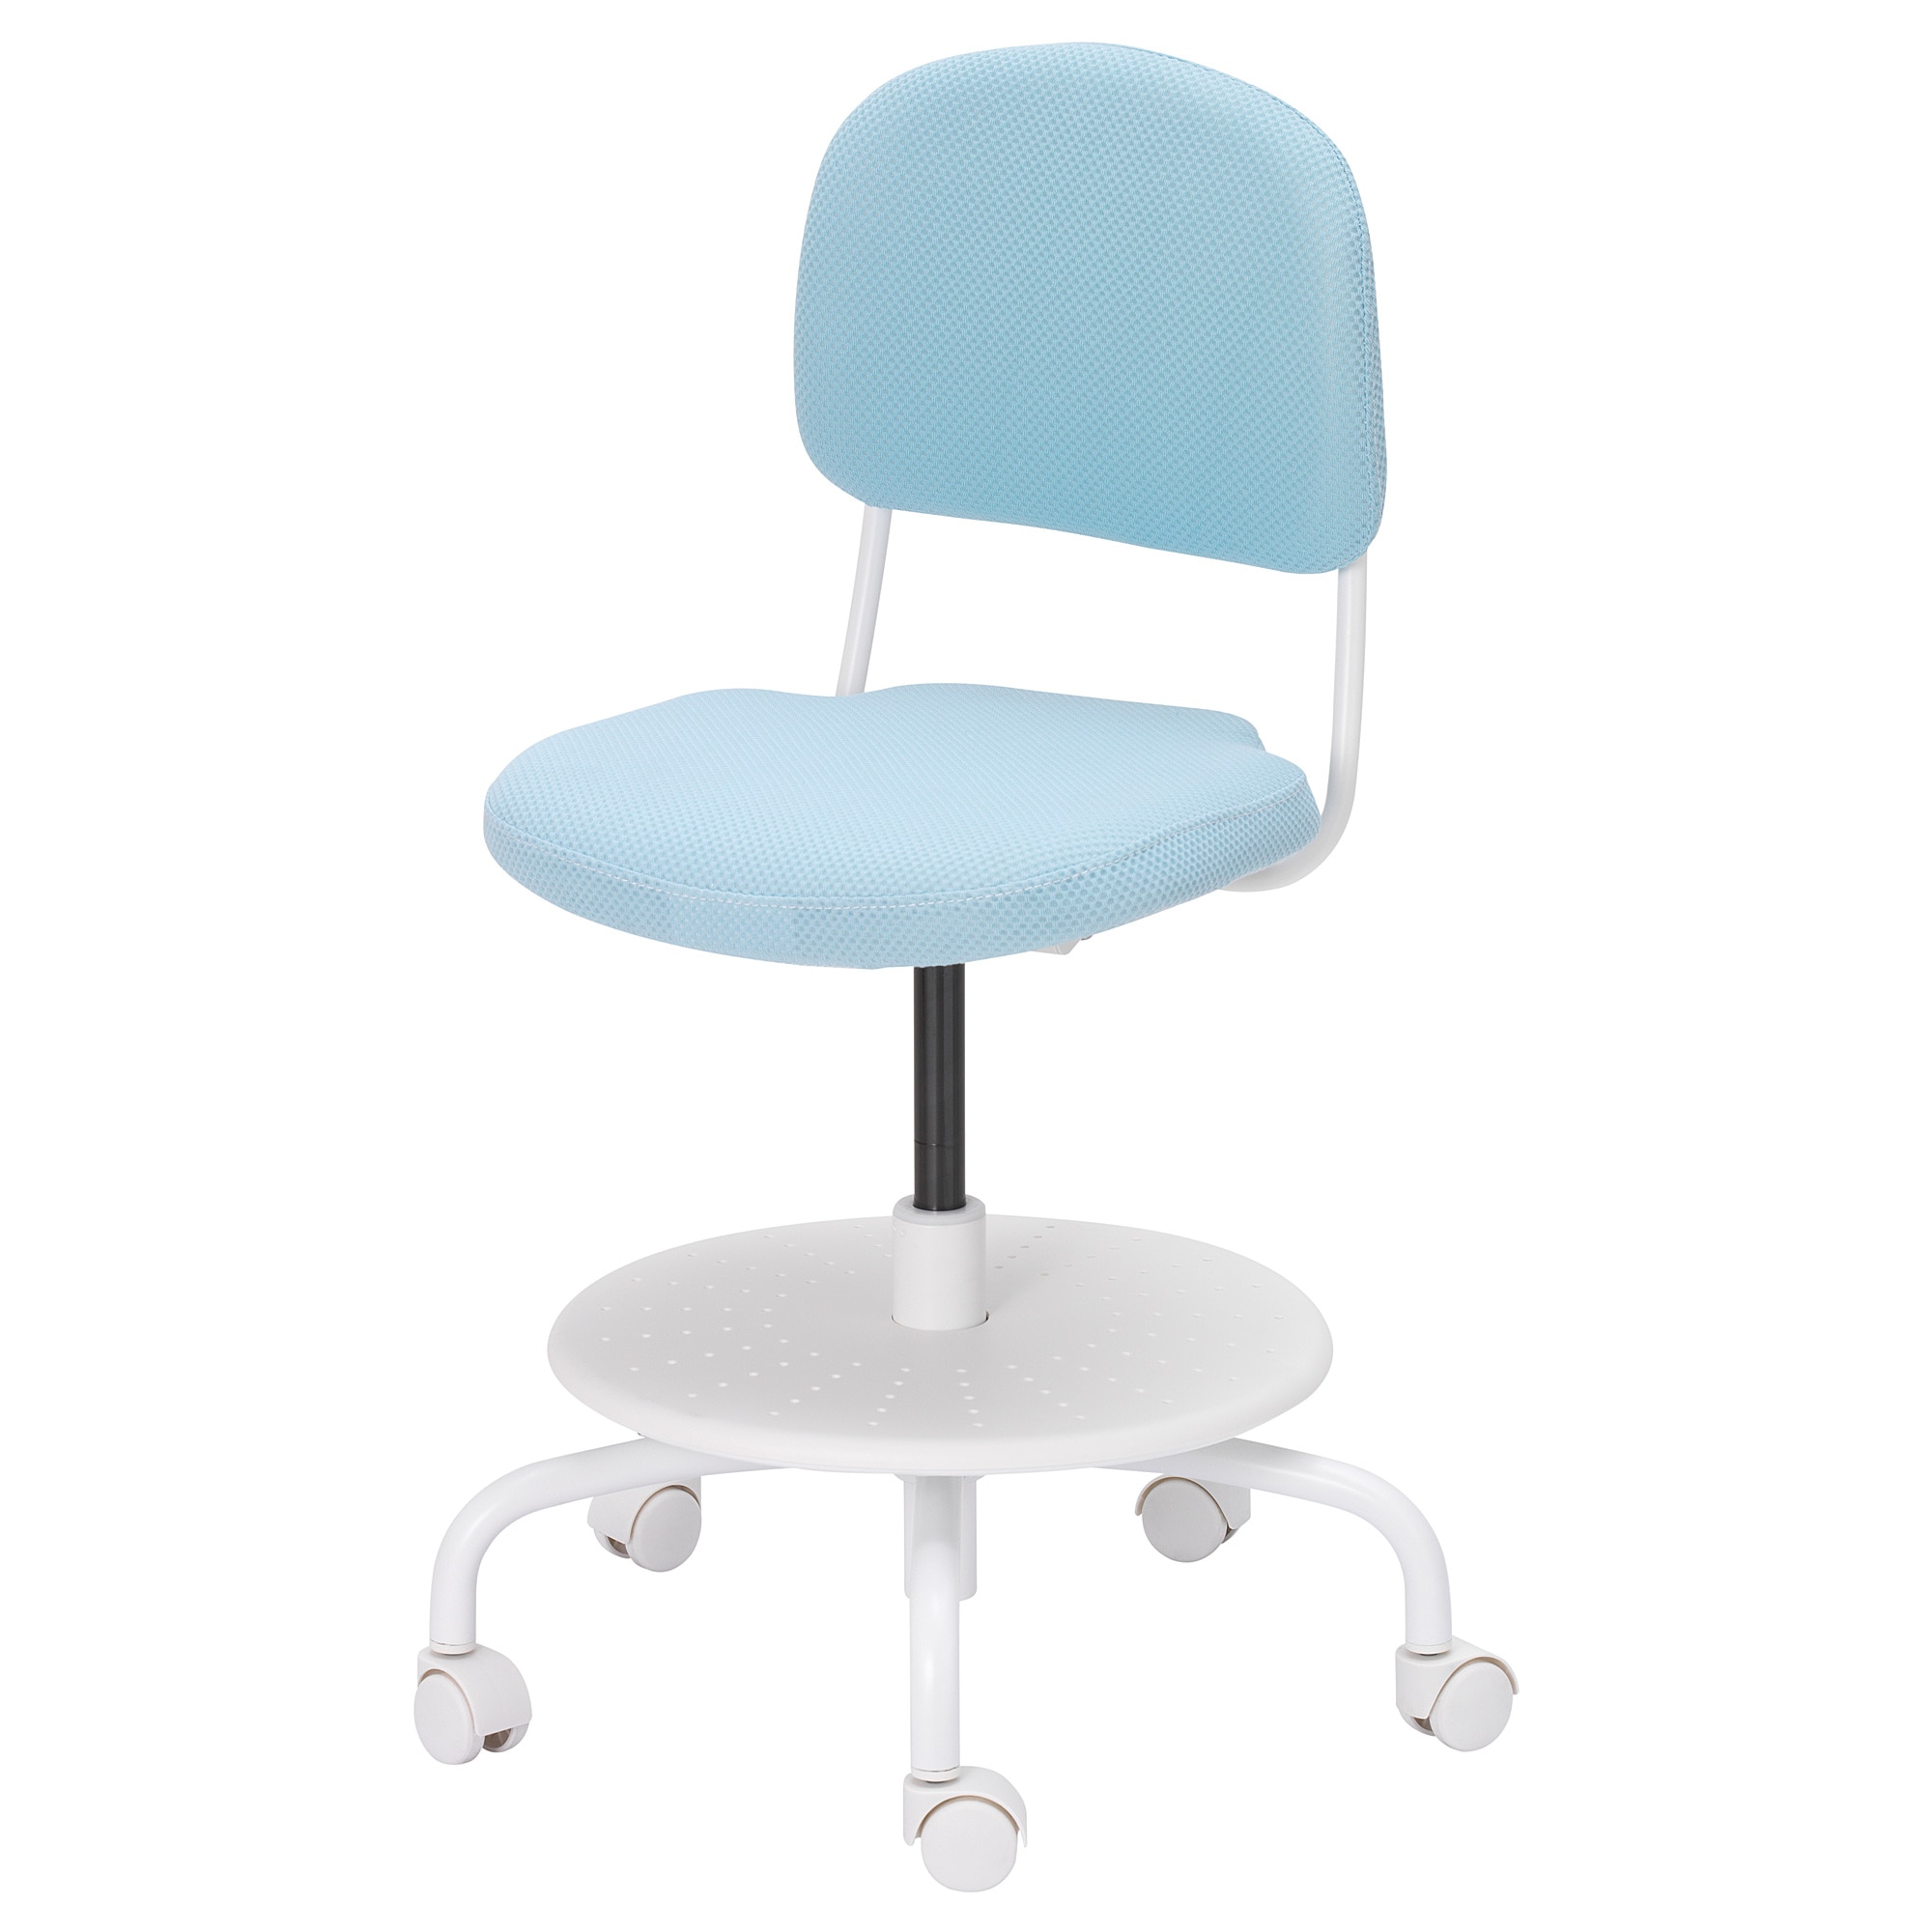 Vimund Child S Desk Chair Light Turquoise Ikea Desk Chair Storage Chair Chair